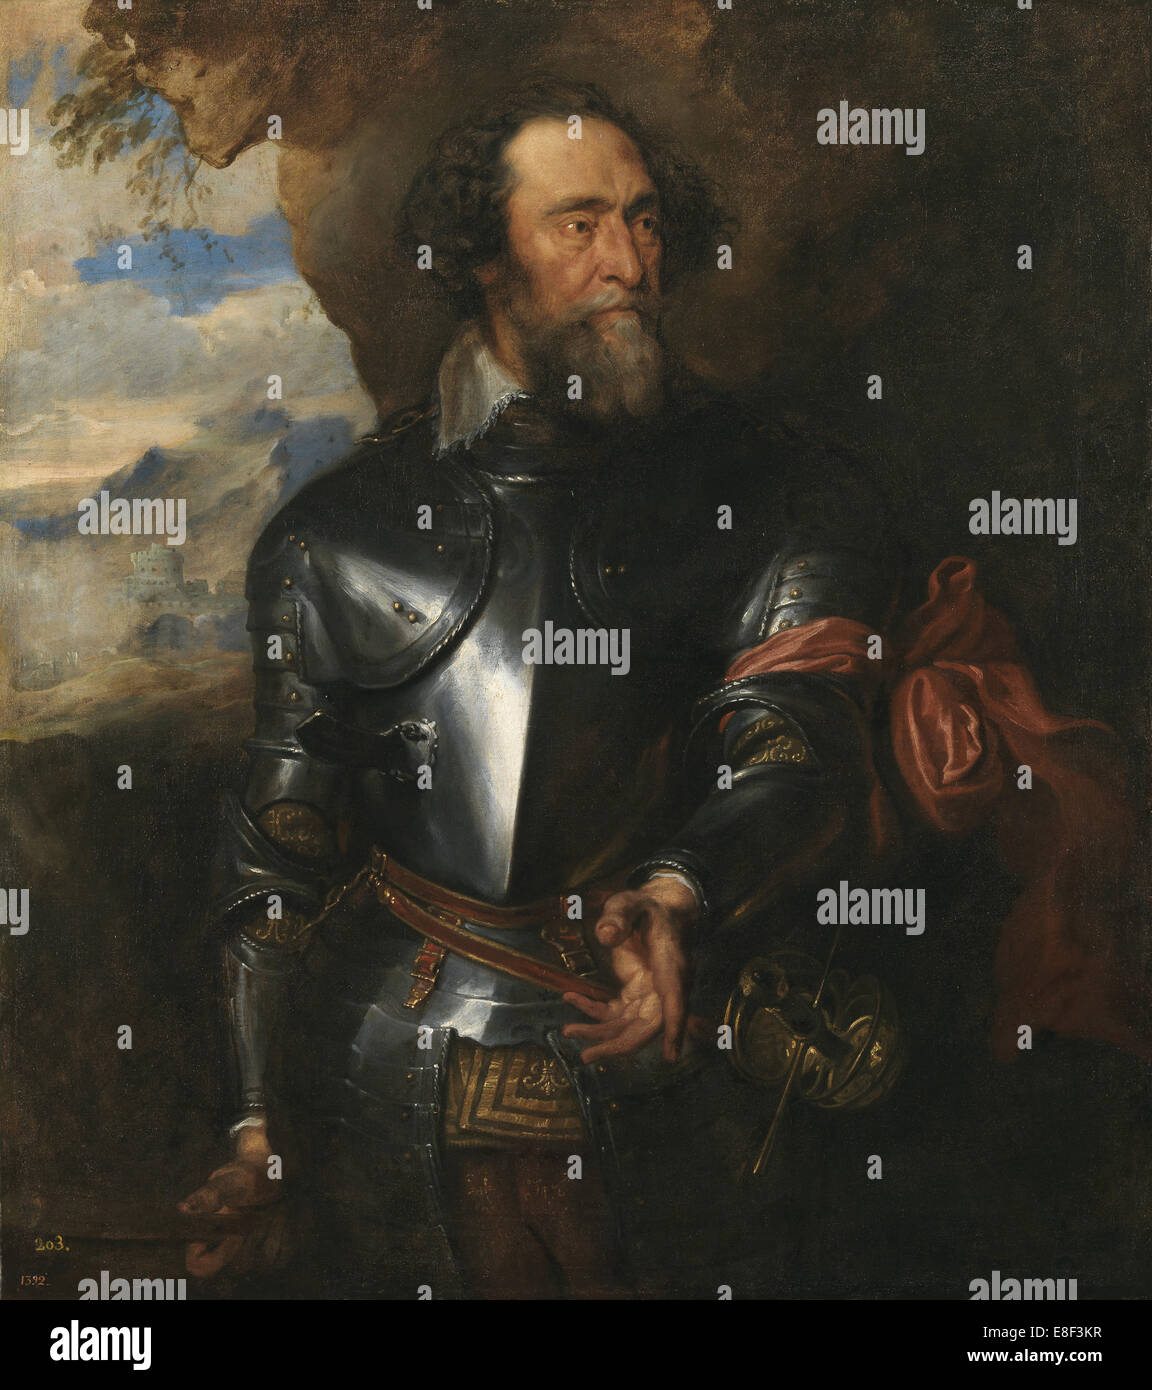 Portrait of Count Hendrik van den Bergh (1573-1638). Artist: Dyck, Sir Anthony van (1599-1641) - Stock Image